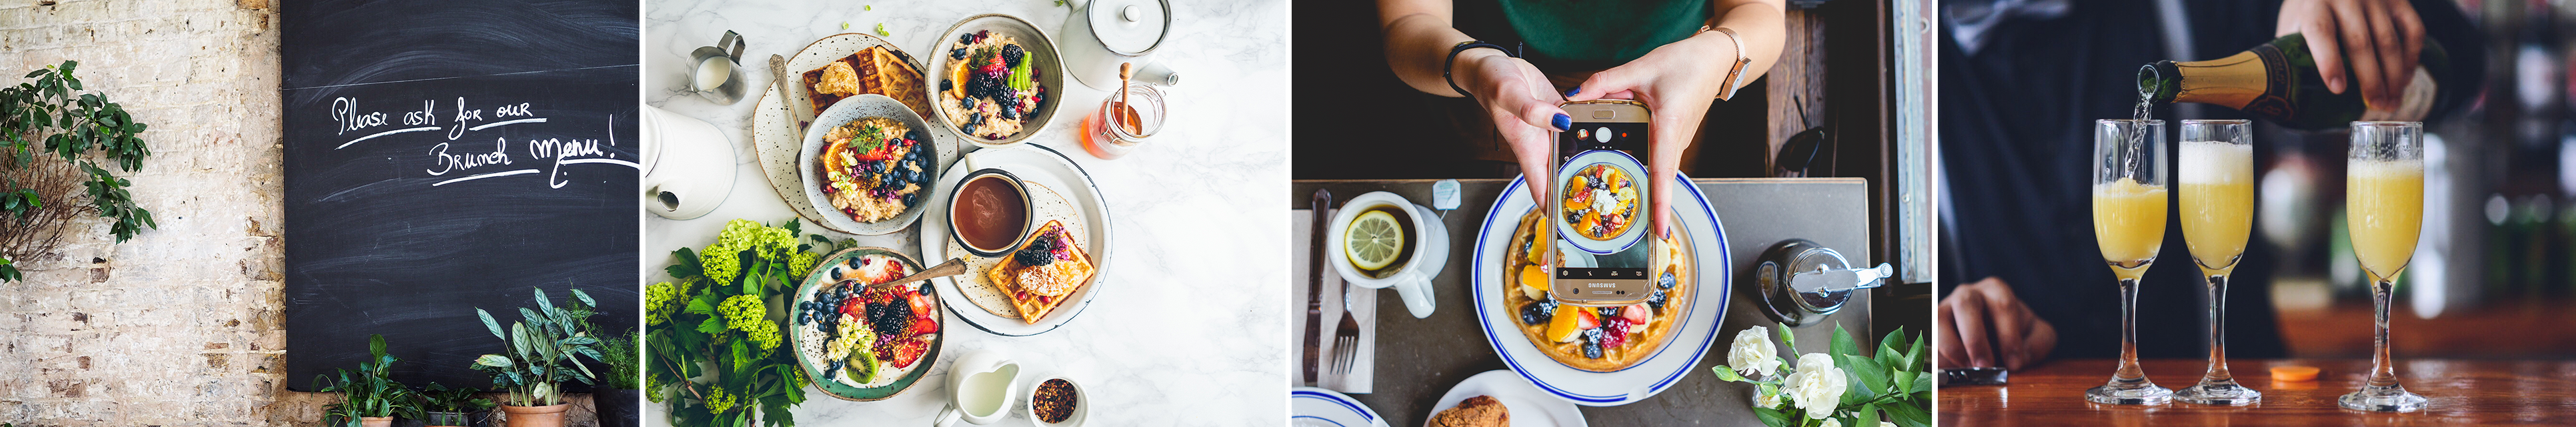 A collage of brunch images including a few glasses of mimosas, someone using their phone to take a picture of their brunch plate, and a place setting with several brunch dishes like waffles and yogurt parfait